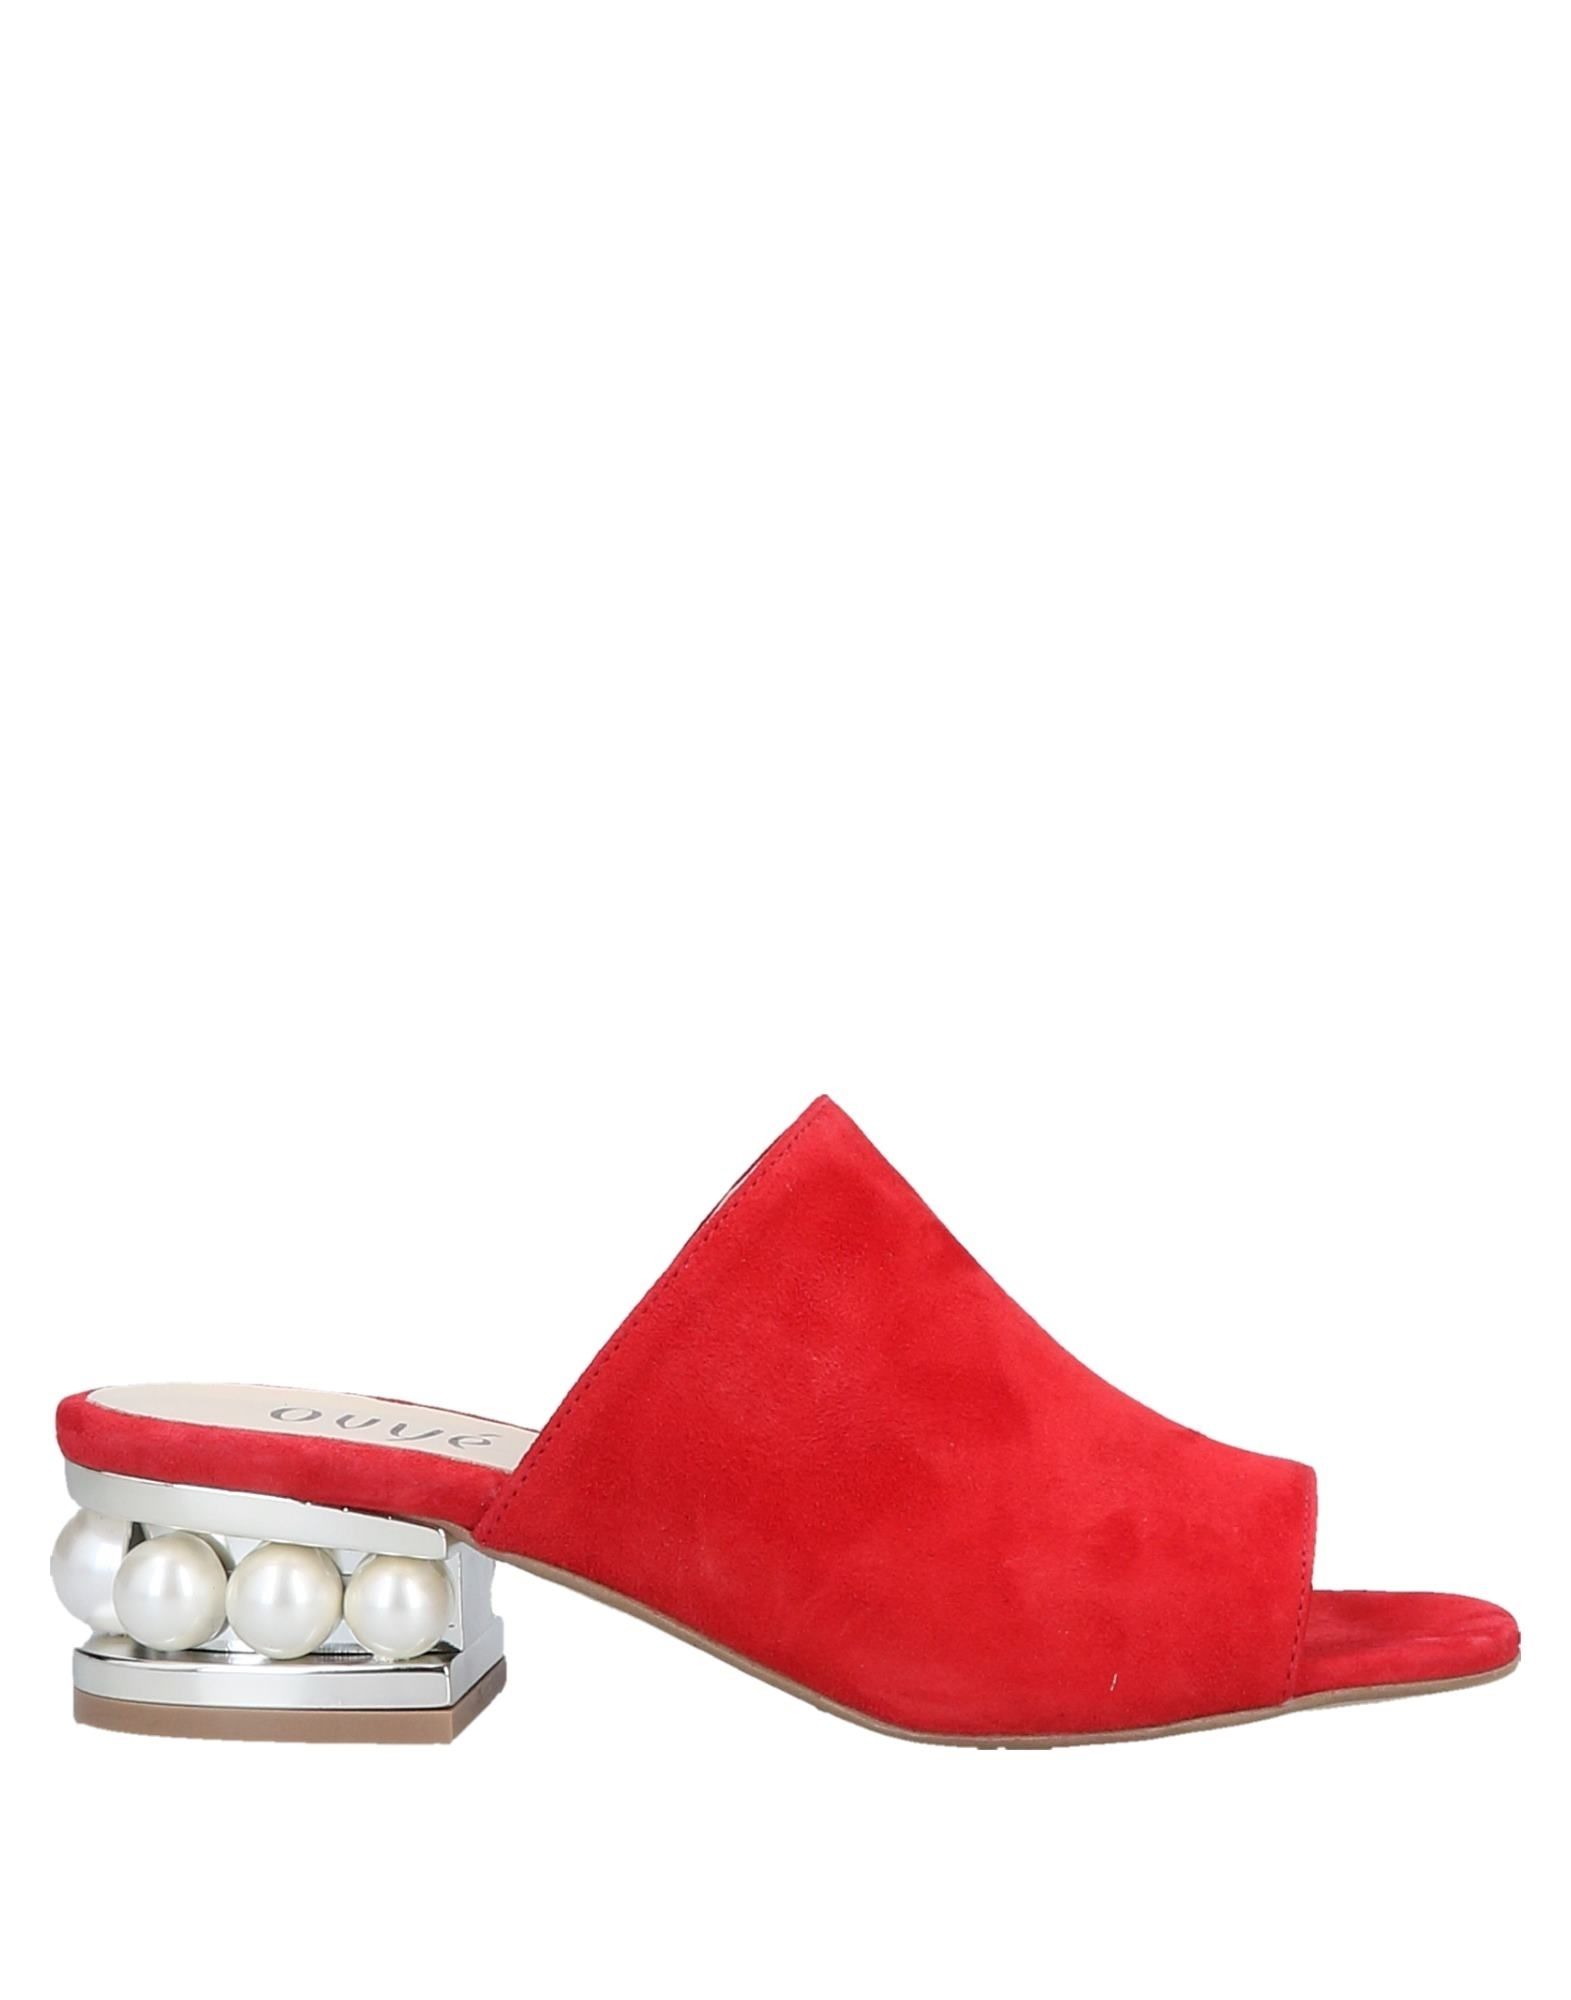 Ovye' By Cristina Lucchi By Sandals - Women Ovye' By Lucchi Cristina Lucchi Sandals online on  Australia - 11564967FN 82d6d8